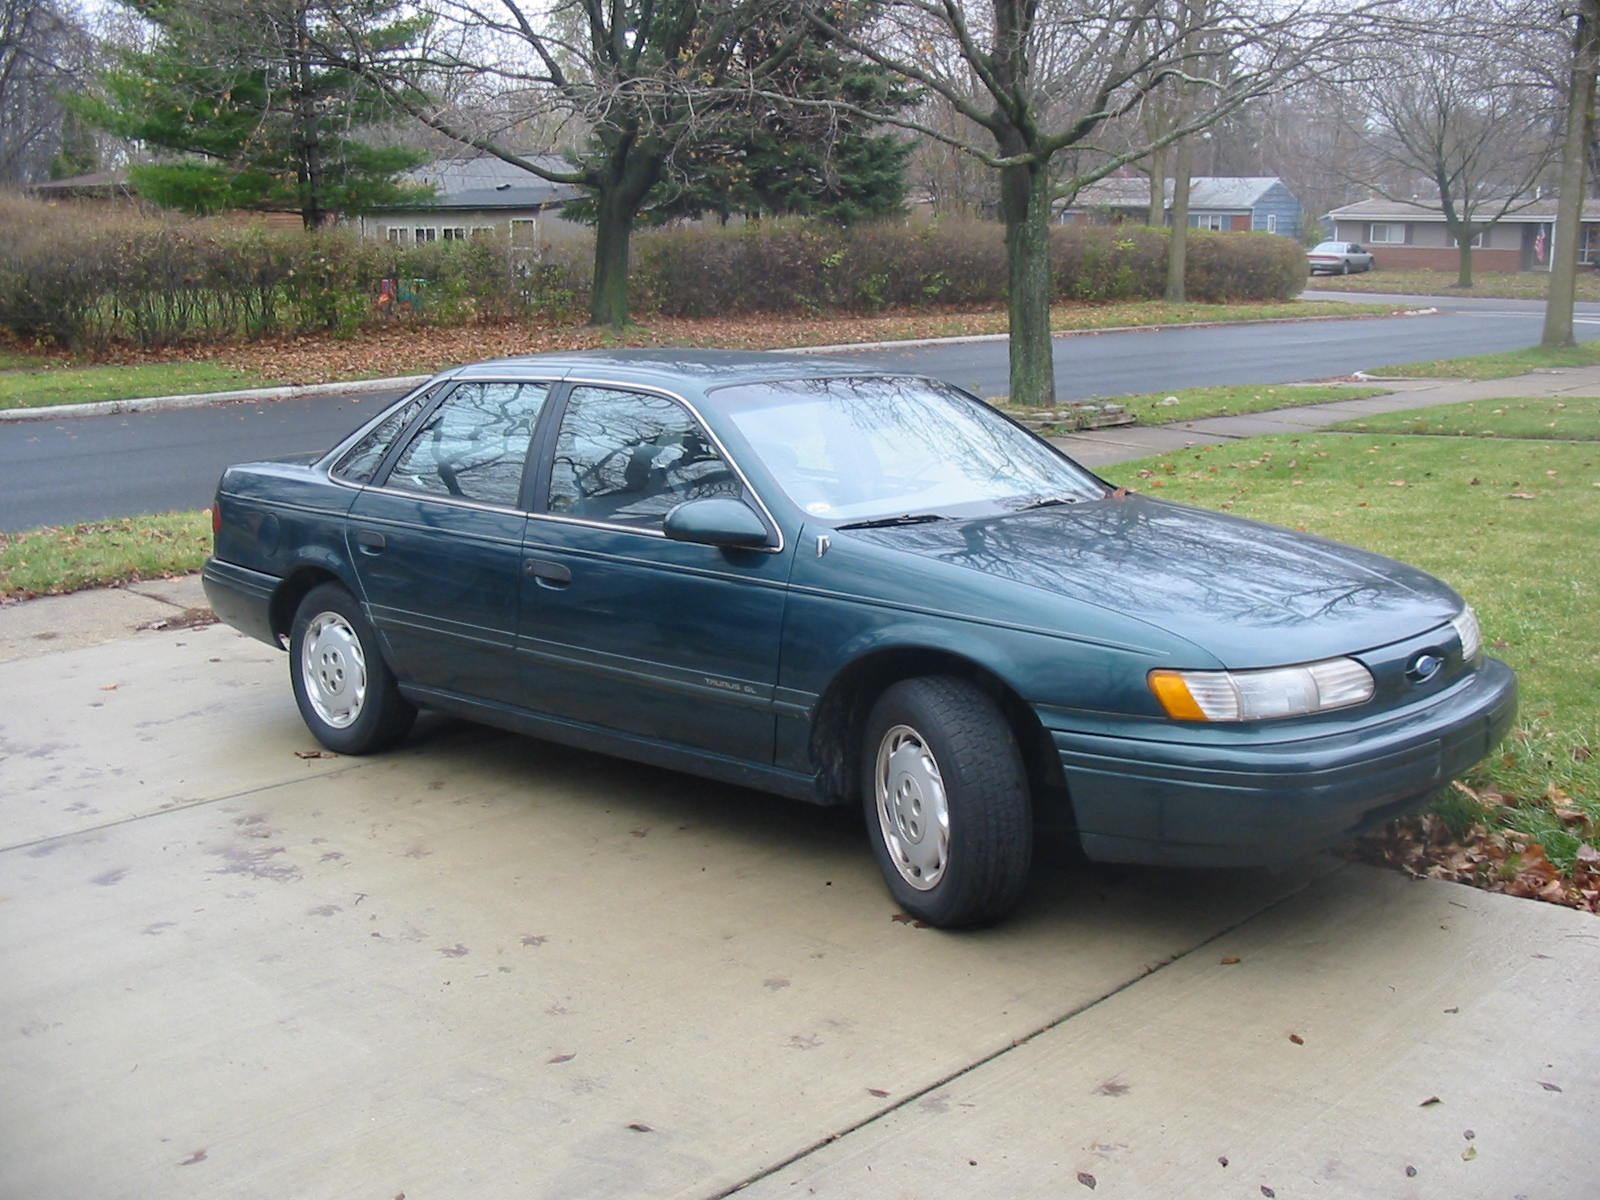 Ford Taurus 1993 photo - 1